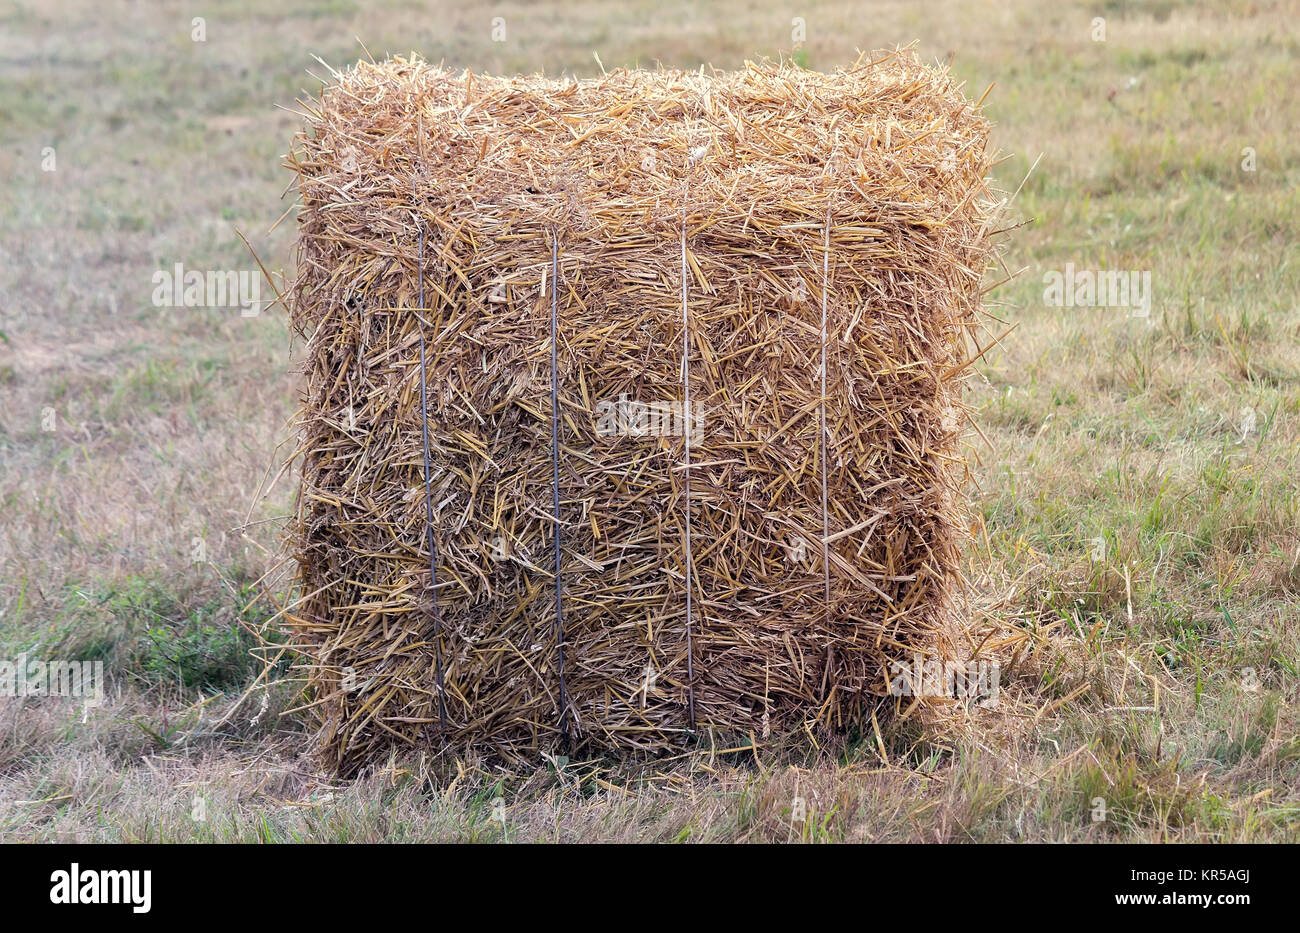 A bale of straw on a field after harvest. Stock Photo